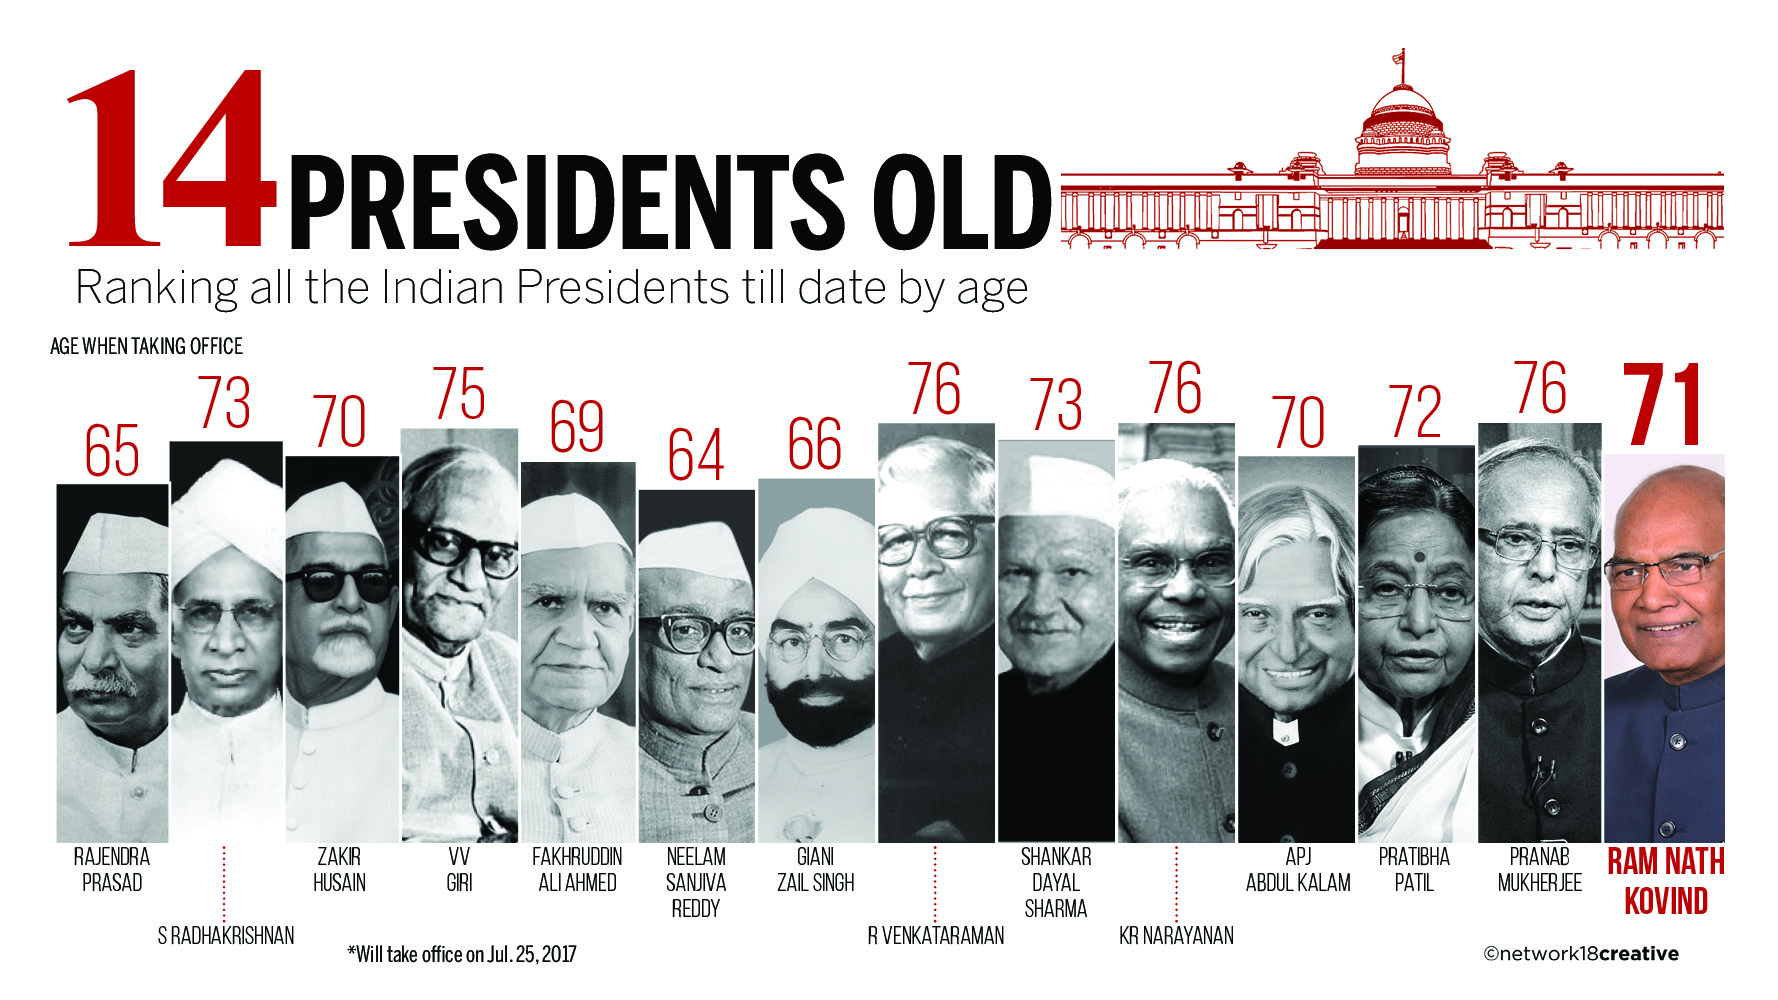 Will agitate against mamata banerjee for attacking our workers bjp the indian express - Here S A Look At All The Presidents Of India